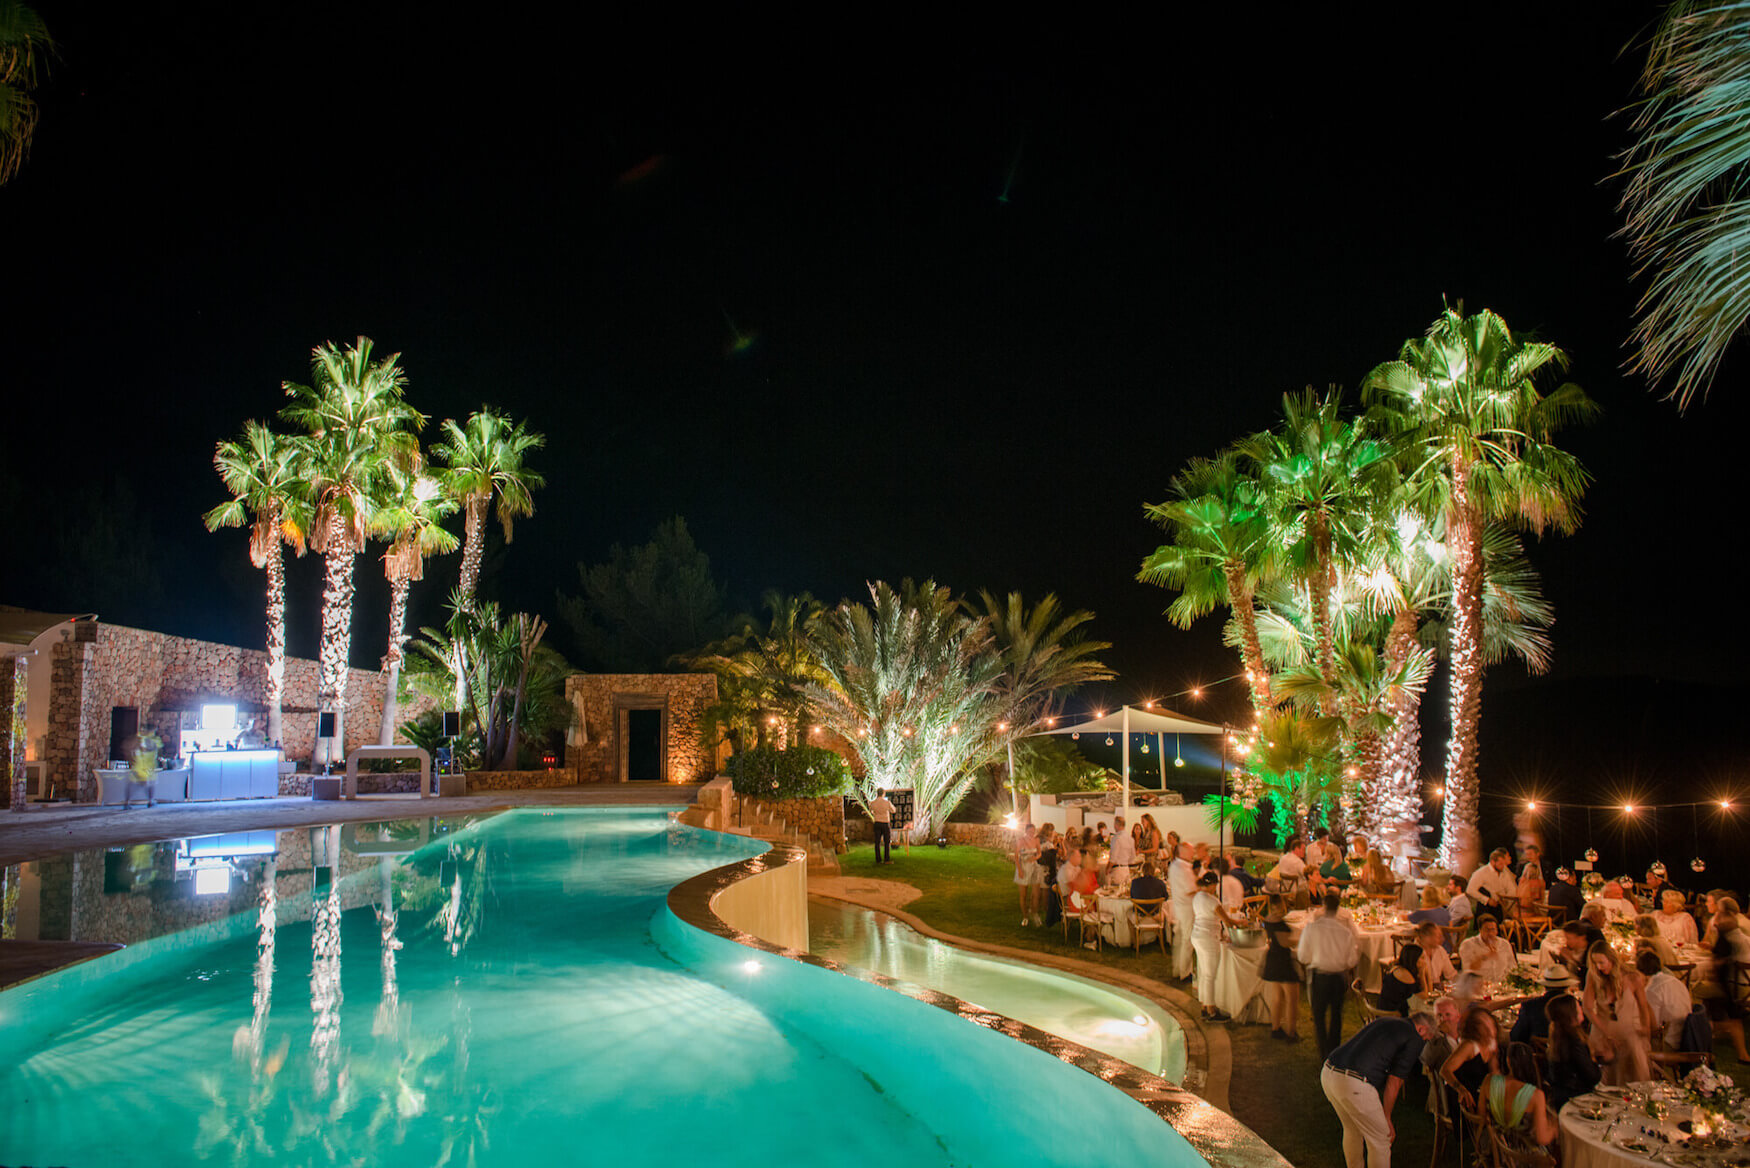 dinner under stars pool side wedding evening meal festoon lighting